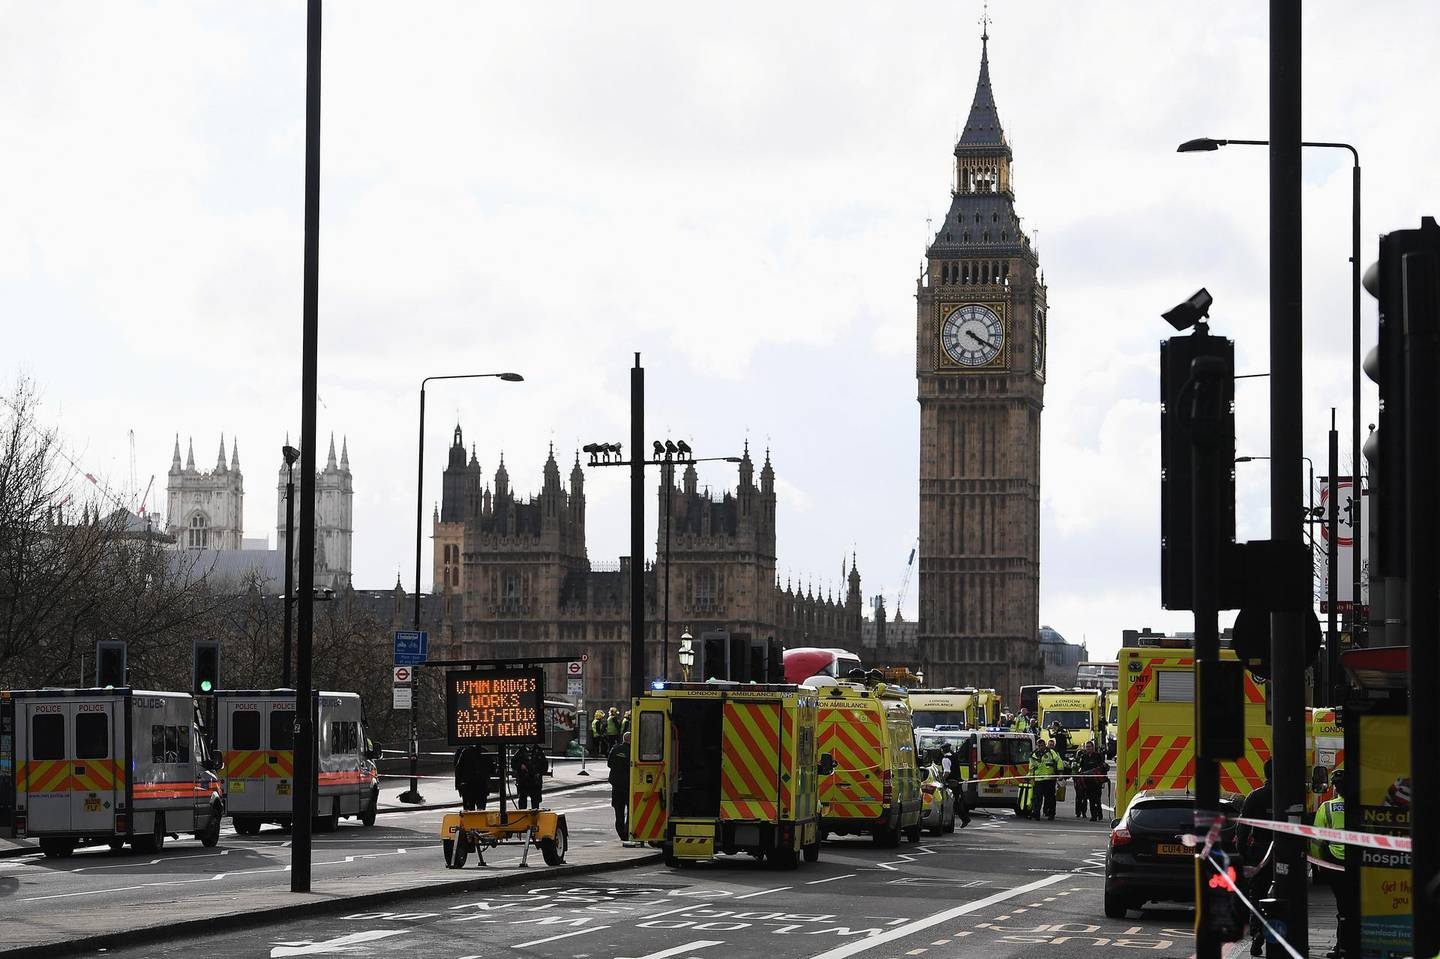 LONDON, ENGLAND - MARCH 22:  Ambulances, police vehicles and emergency services seen on Westminster Bridge on March 22, 2017 in London, England. A police officer was stabbed near to the British Parliament and the alleged assailant shot by armed police. Scotland Yard also reported an incident on Westminster Bridge where one woman has been killed and several people seriously injured by a car.  (Photo by Carl Court/Getty Images)